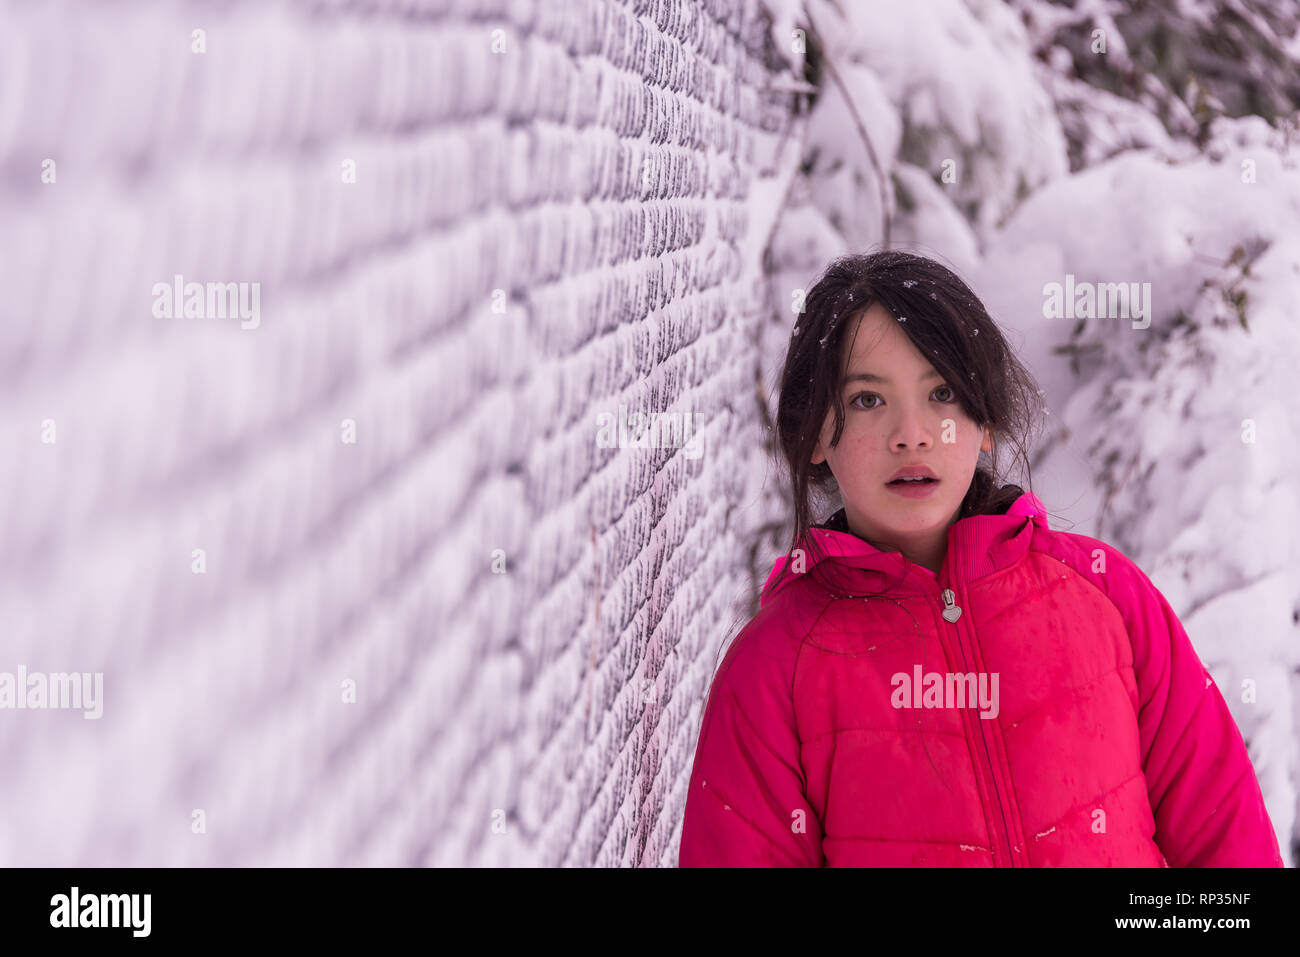 Young Asian girl in pink coat standing next to snow covered fence - Stock Image